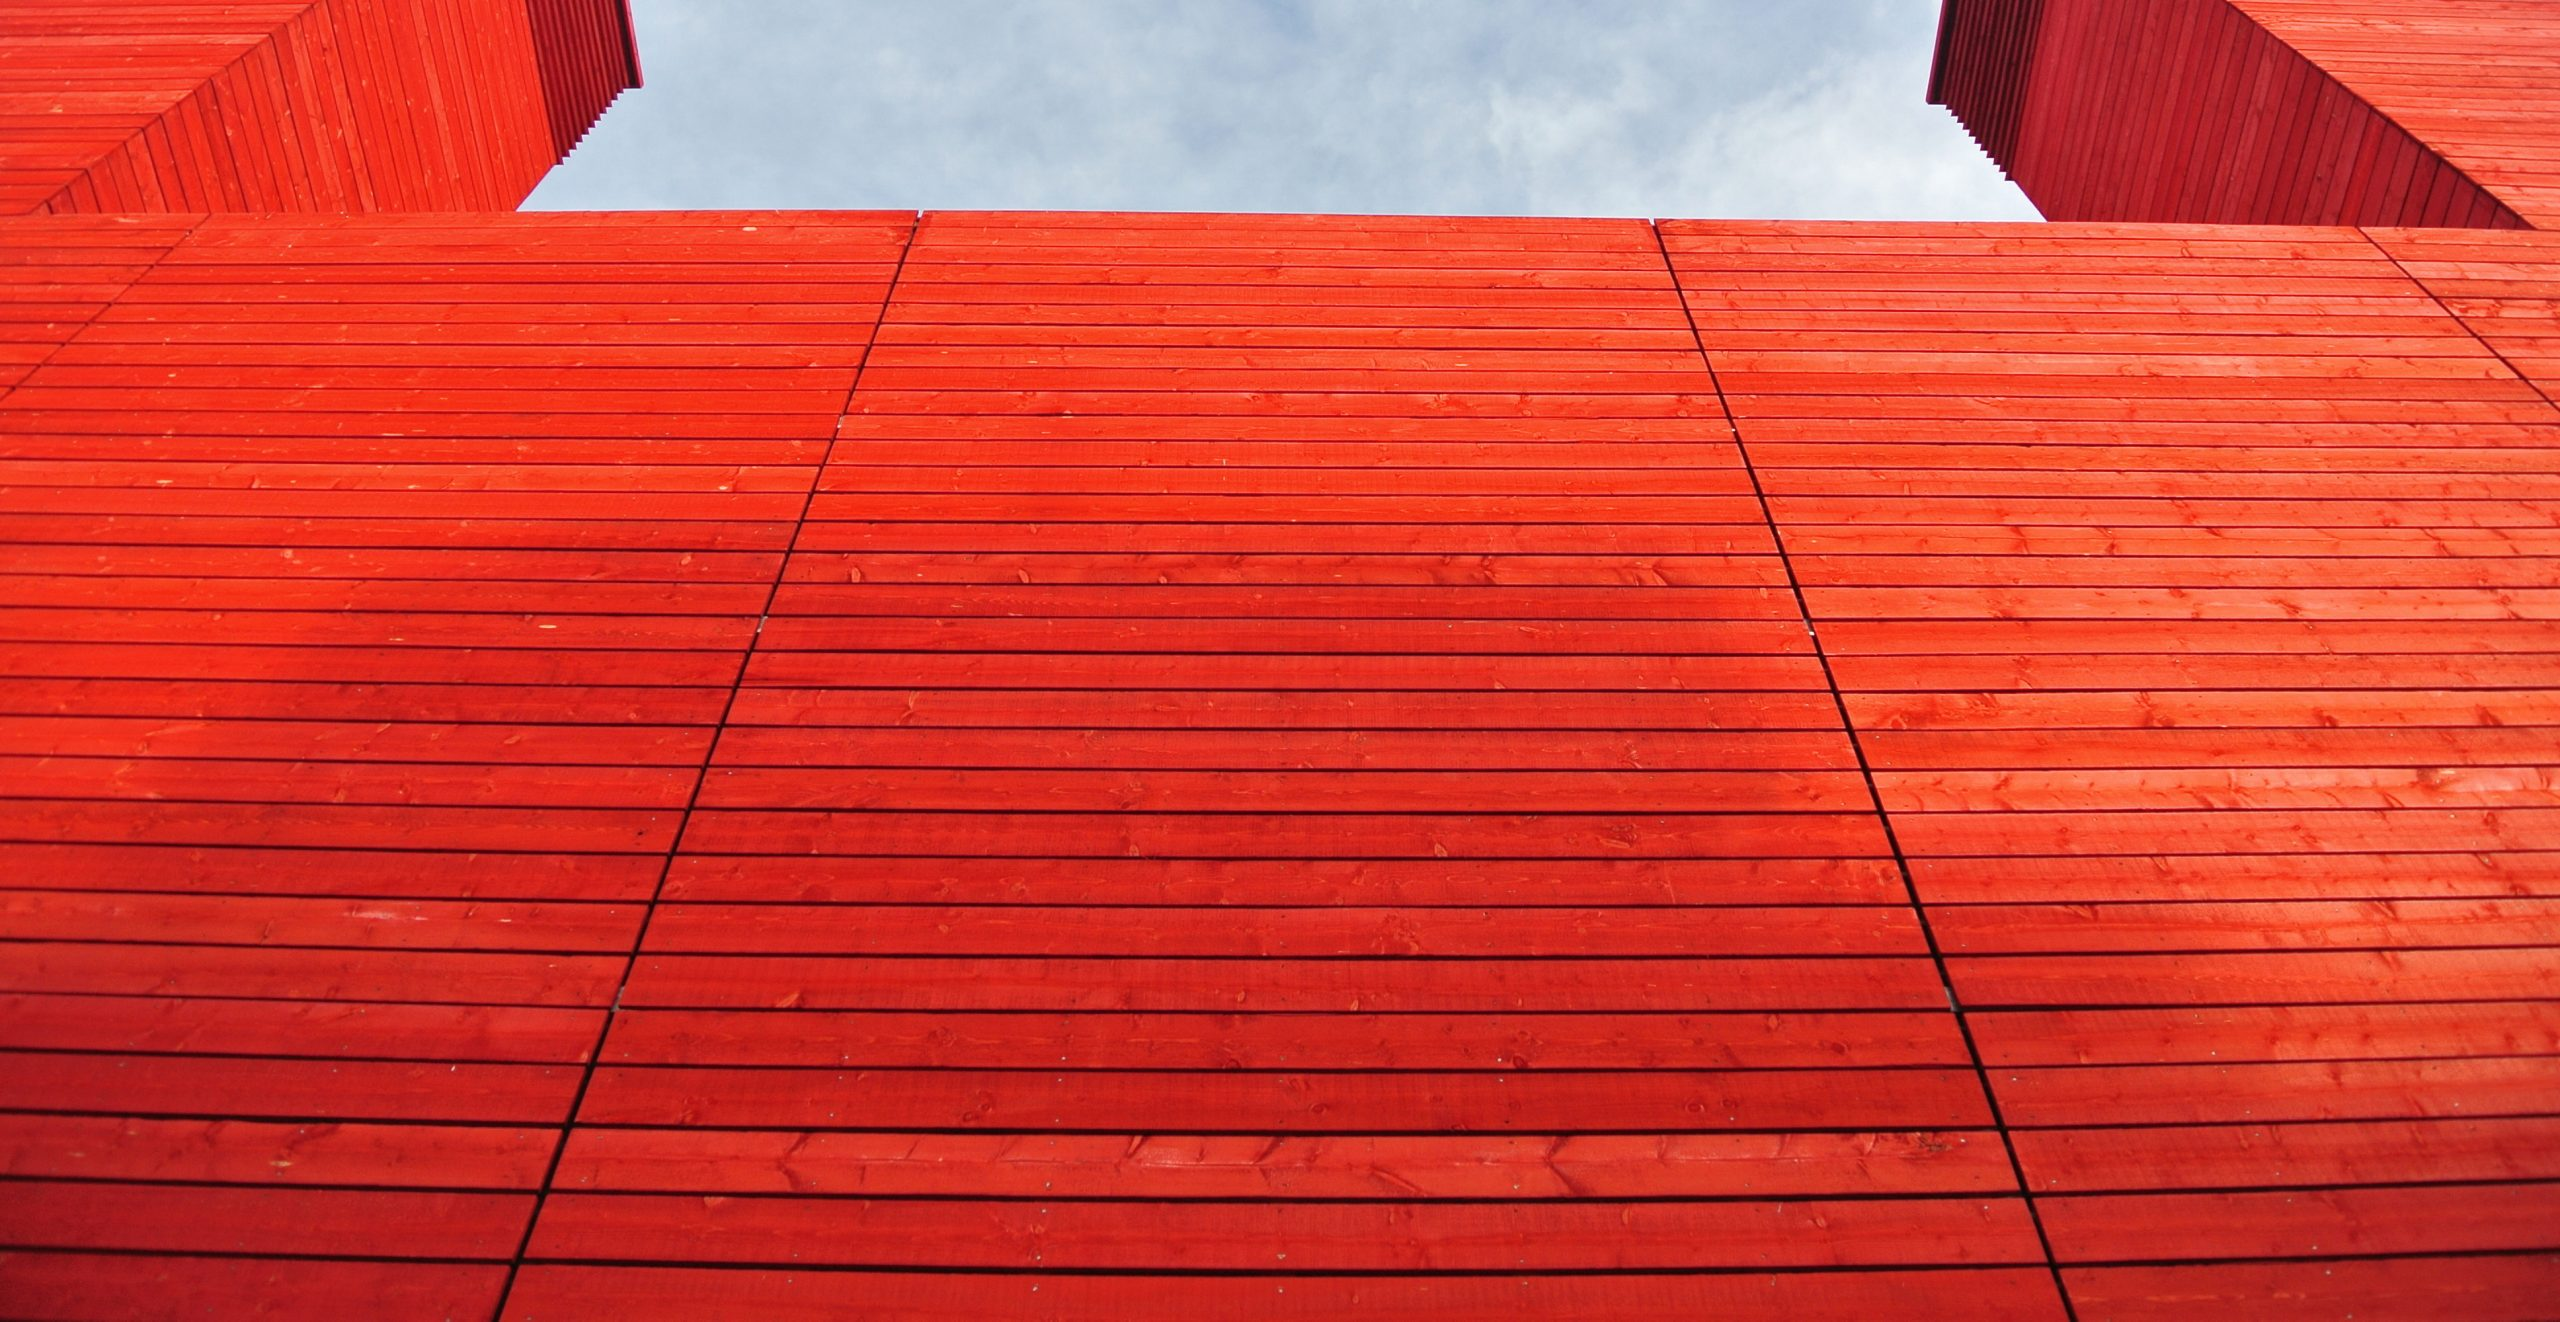 Shot from a low angle, this image shows the eye catching outside of the National Theatre - red panels across the building